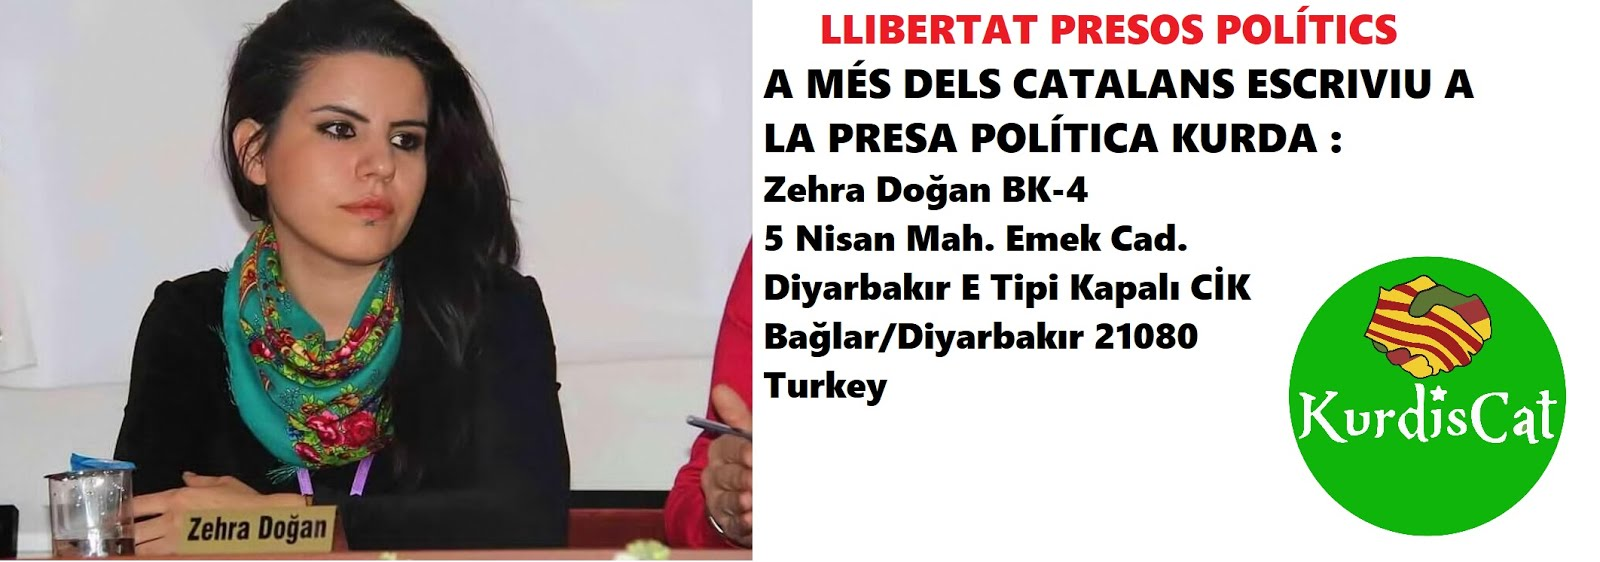 LLIBERTAT PRESOS POLÍTICS